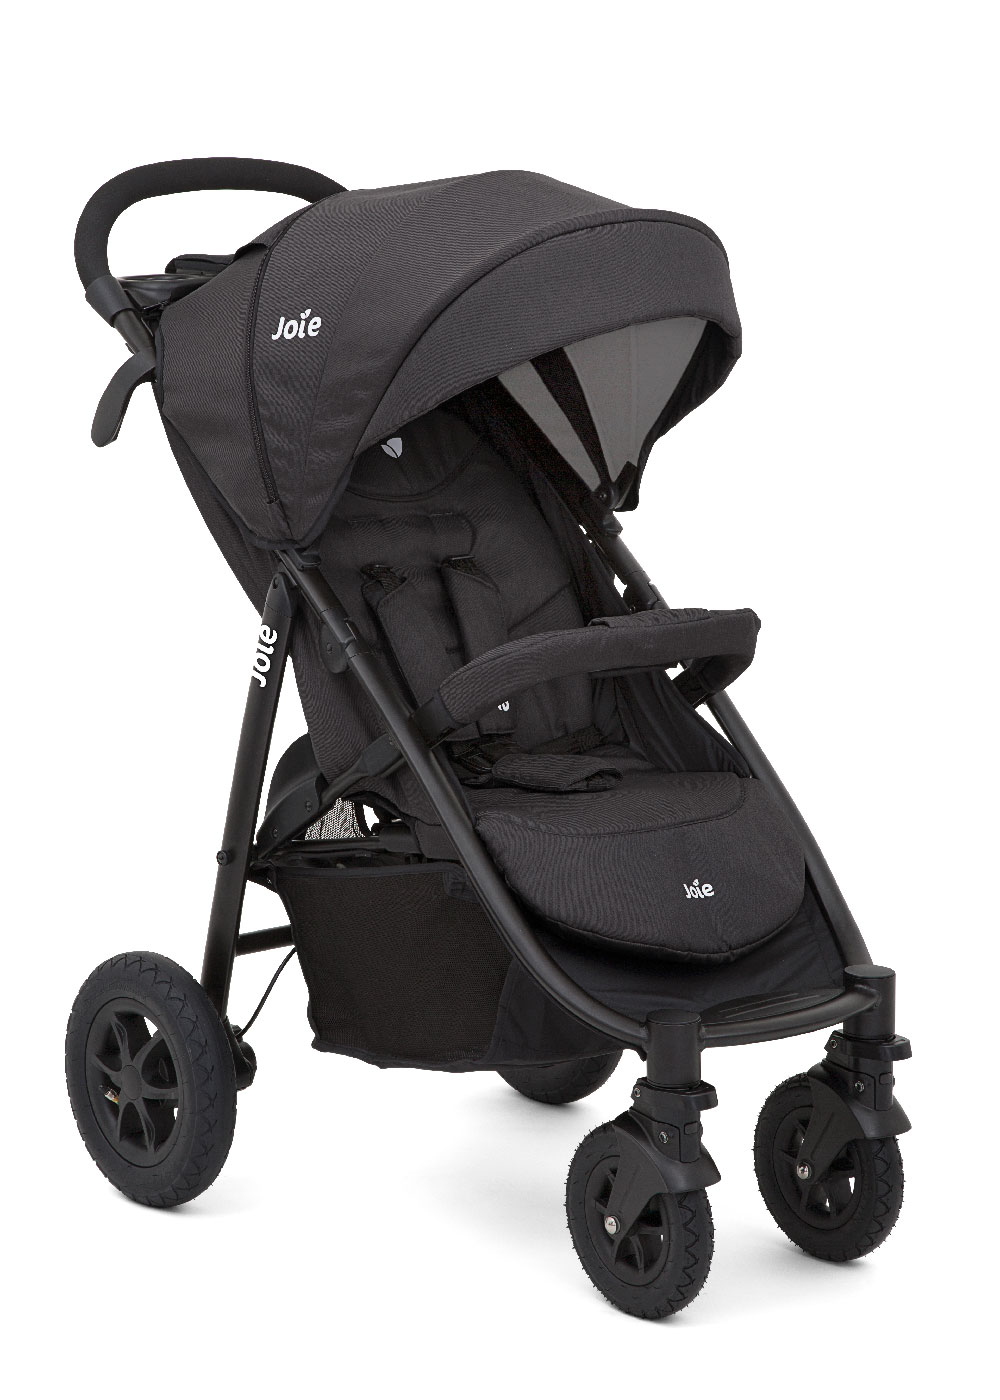 Ebay Kinderwagen Joie Litetrax 4 Air Pushchair Joie Explore Joie